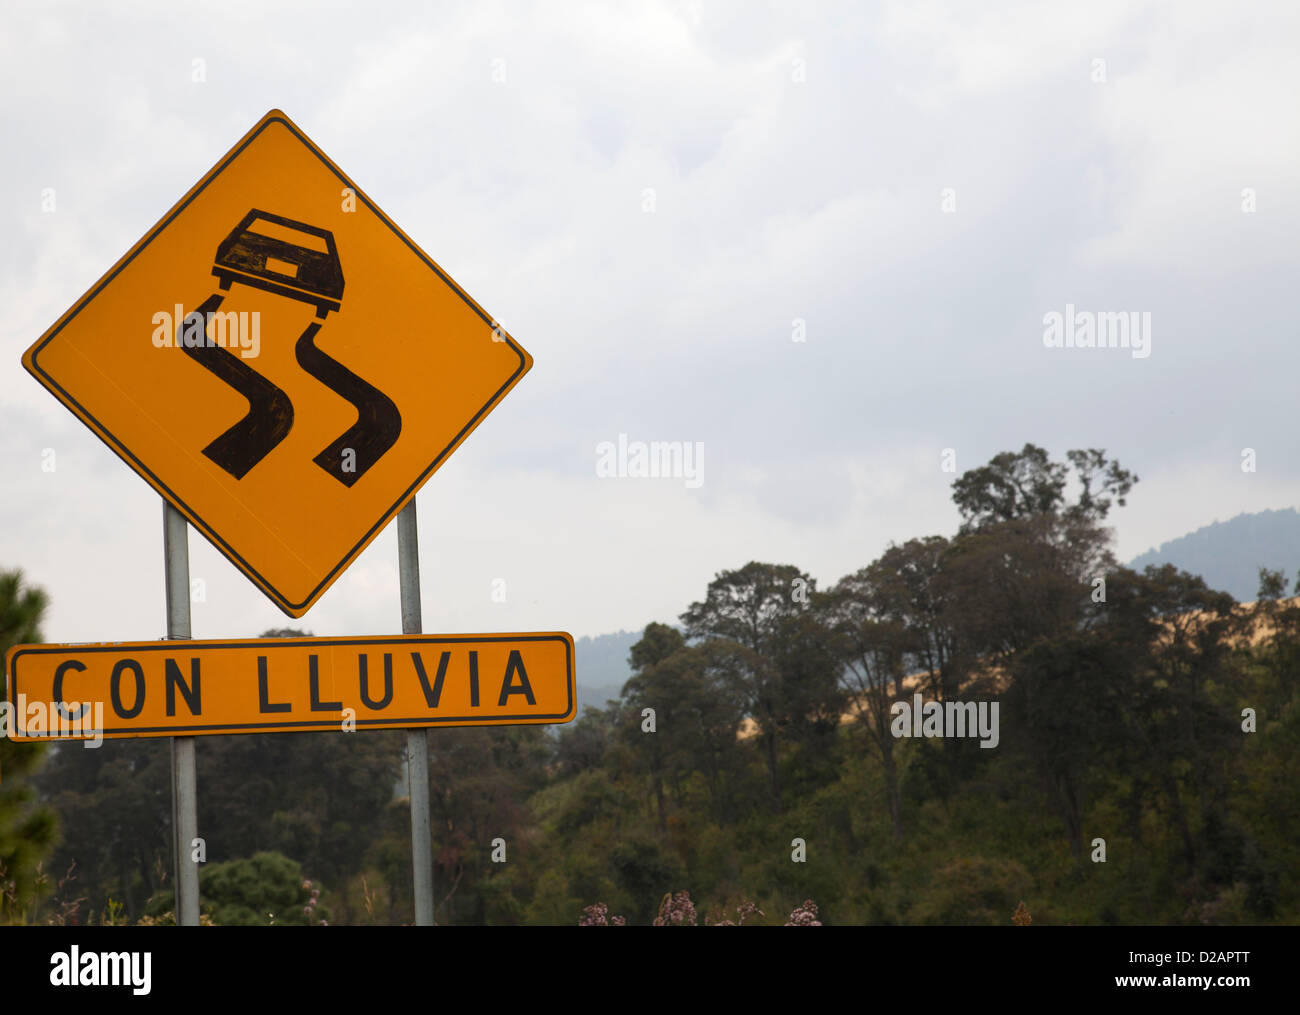 Danger sign in mexico - Slippery when Raining sign - Stock Image